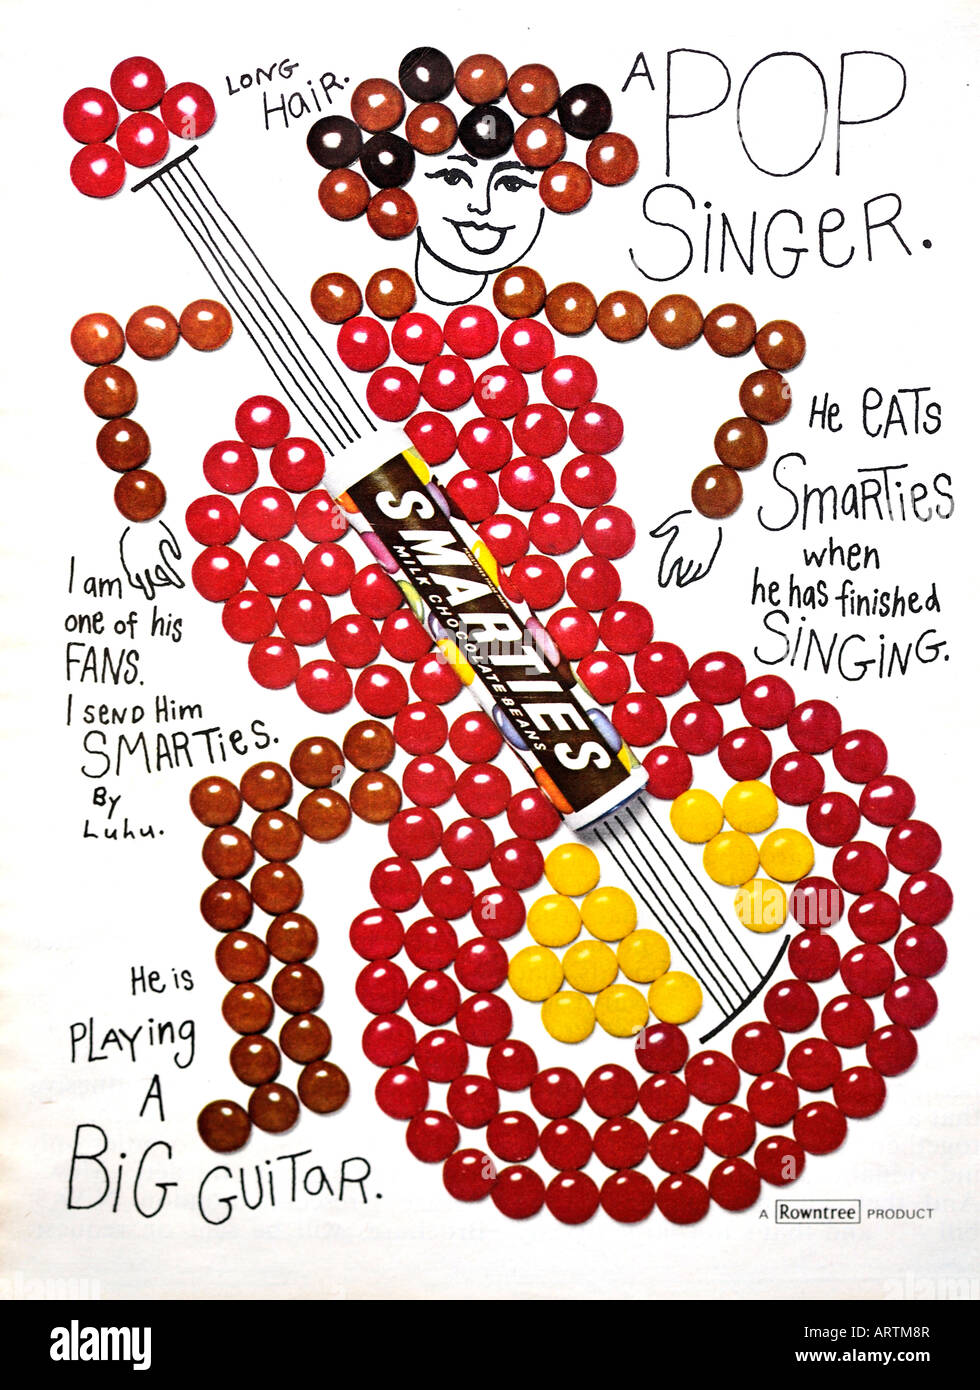 1960s Smarties by Rowntree advertisement FOR EDITORIAL USE ONLY - Stock Image